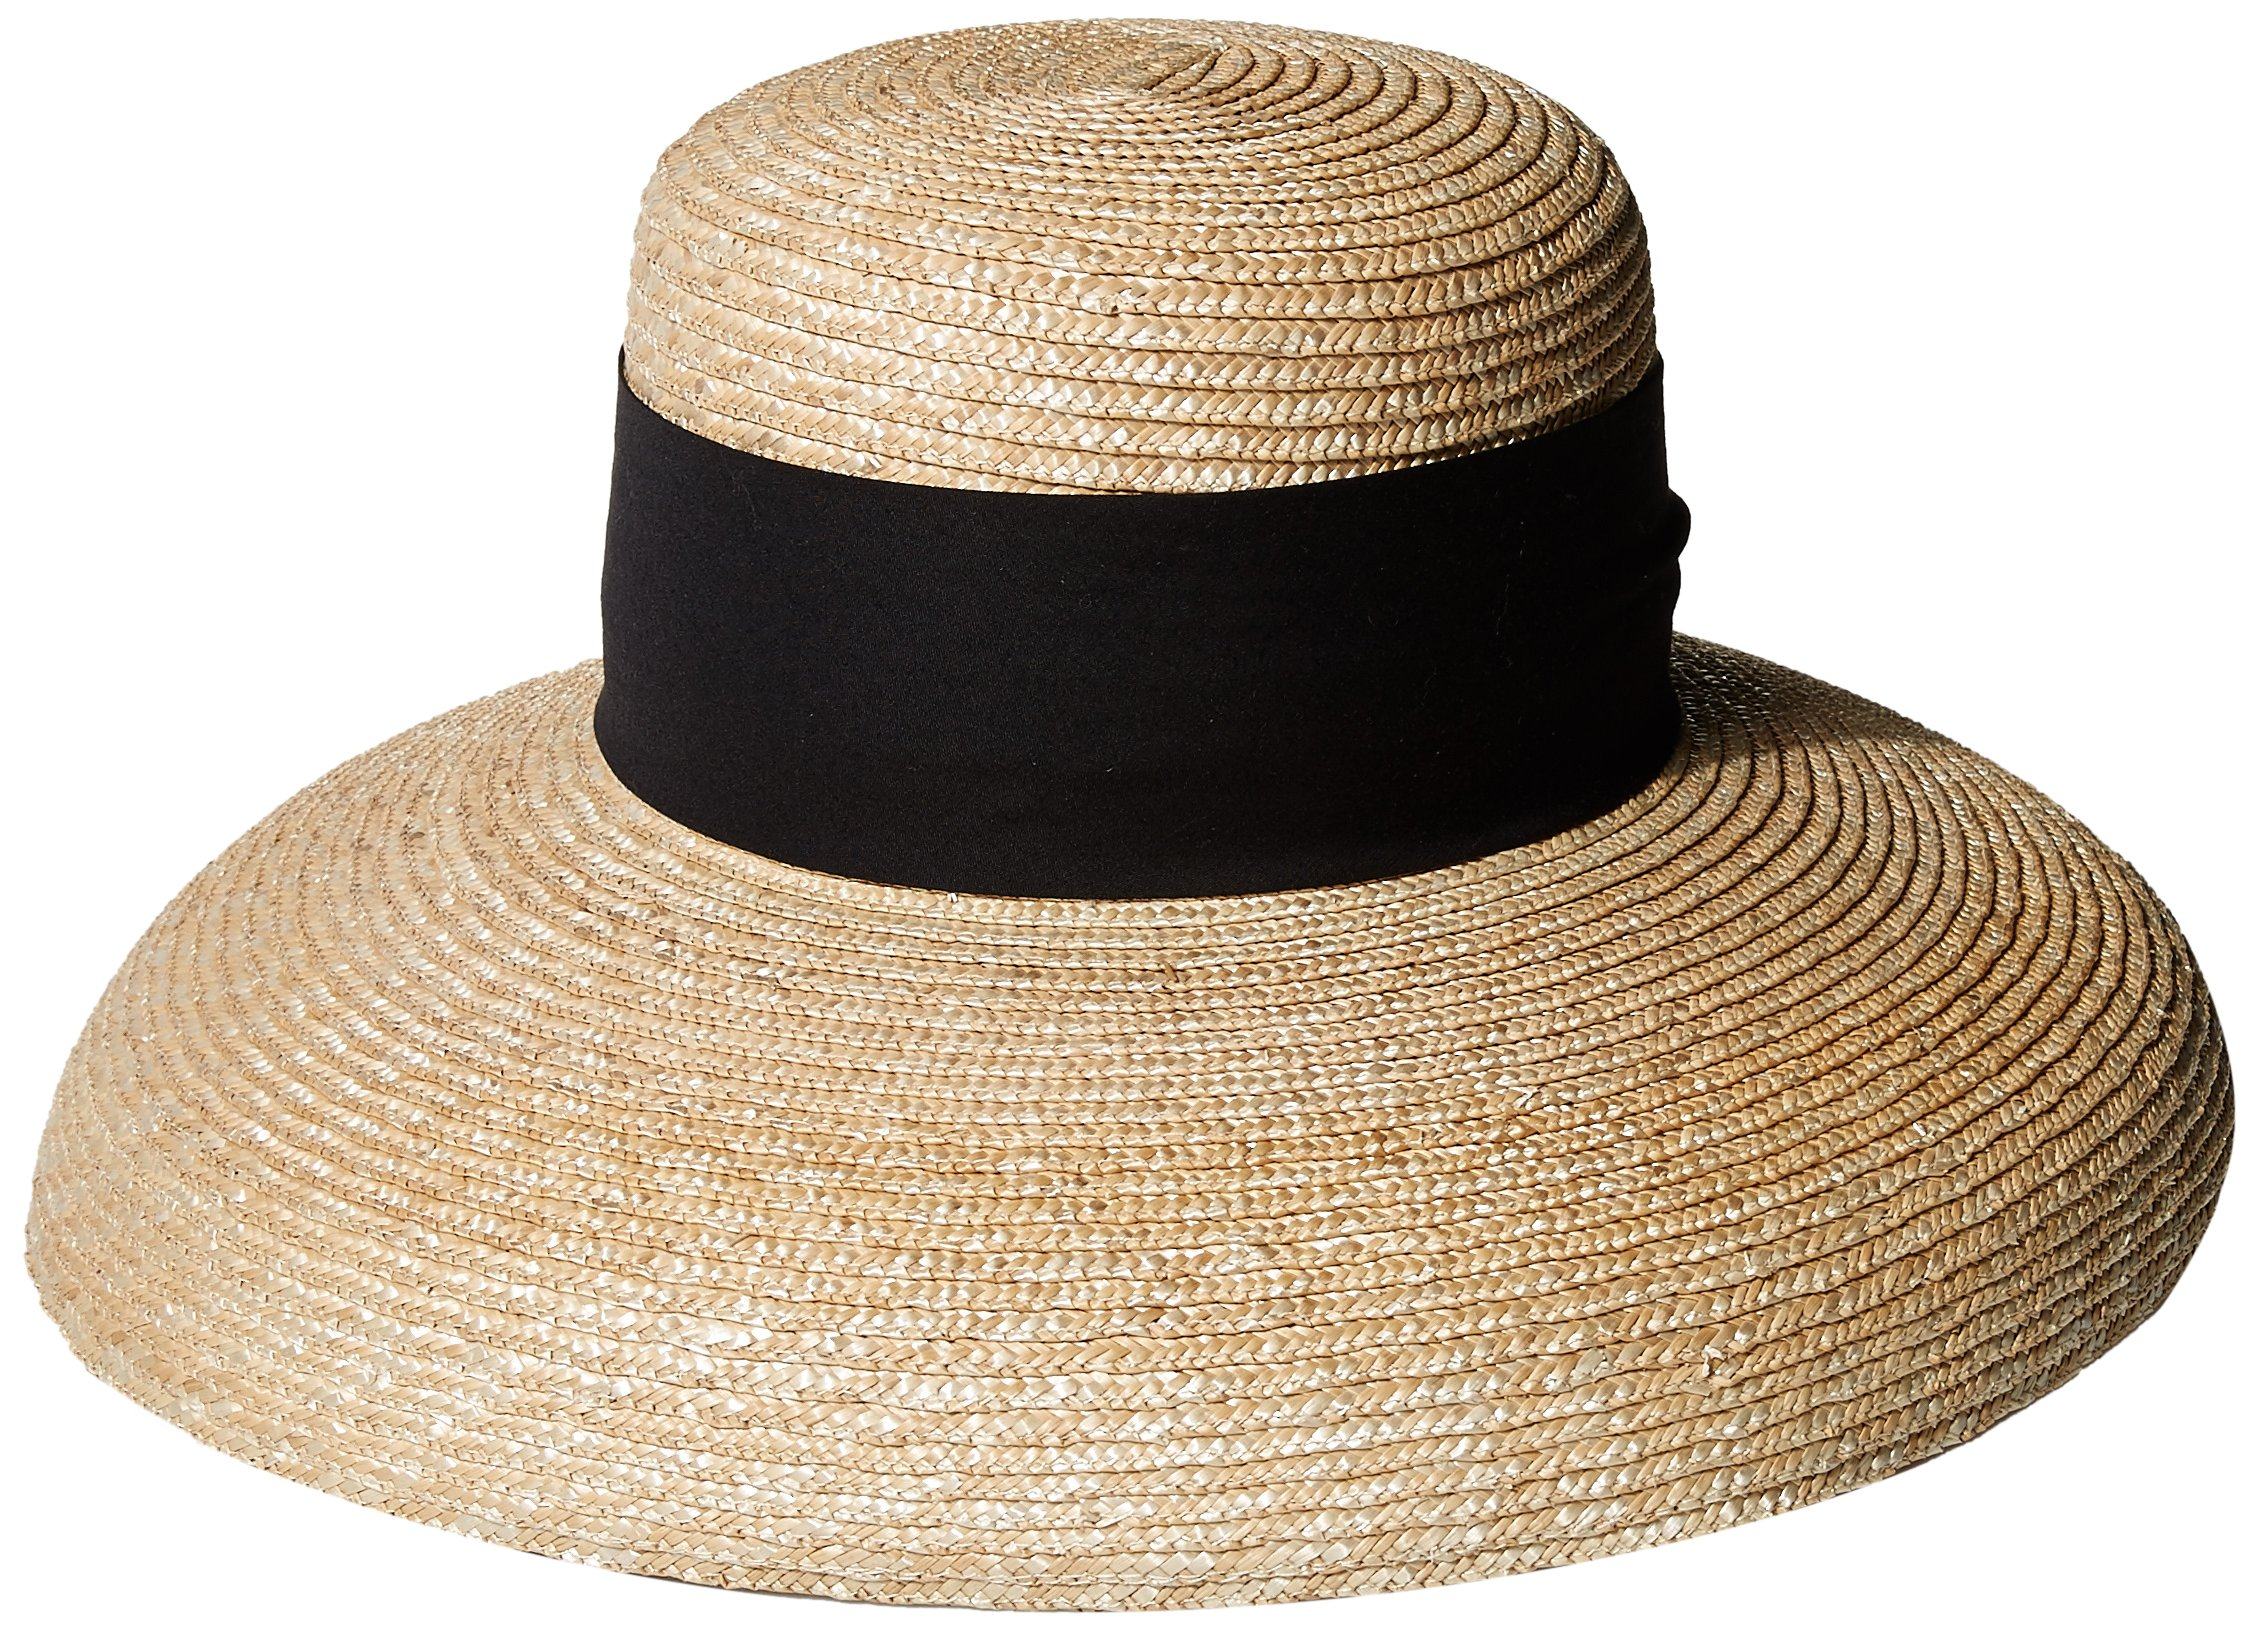 Gottex Women's Sasha Milan Sunhat Packable, Adjustable and UPF Rated, Natural/Black, One Size by Gottex